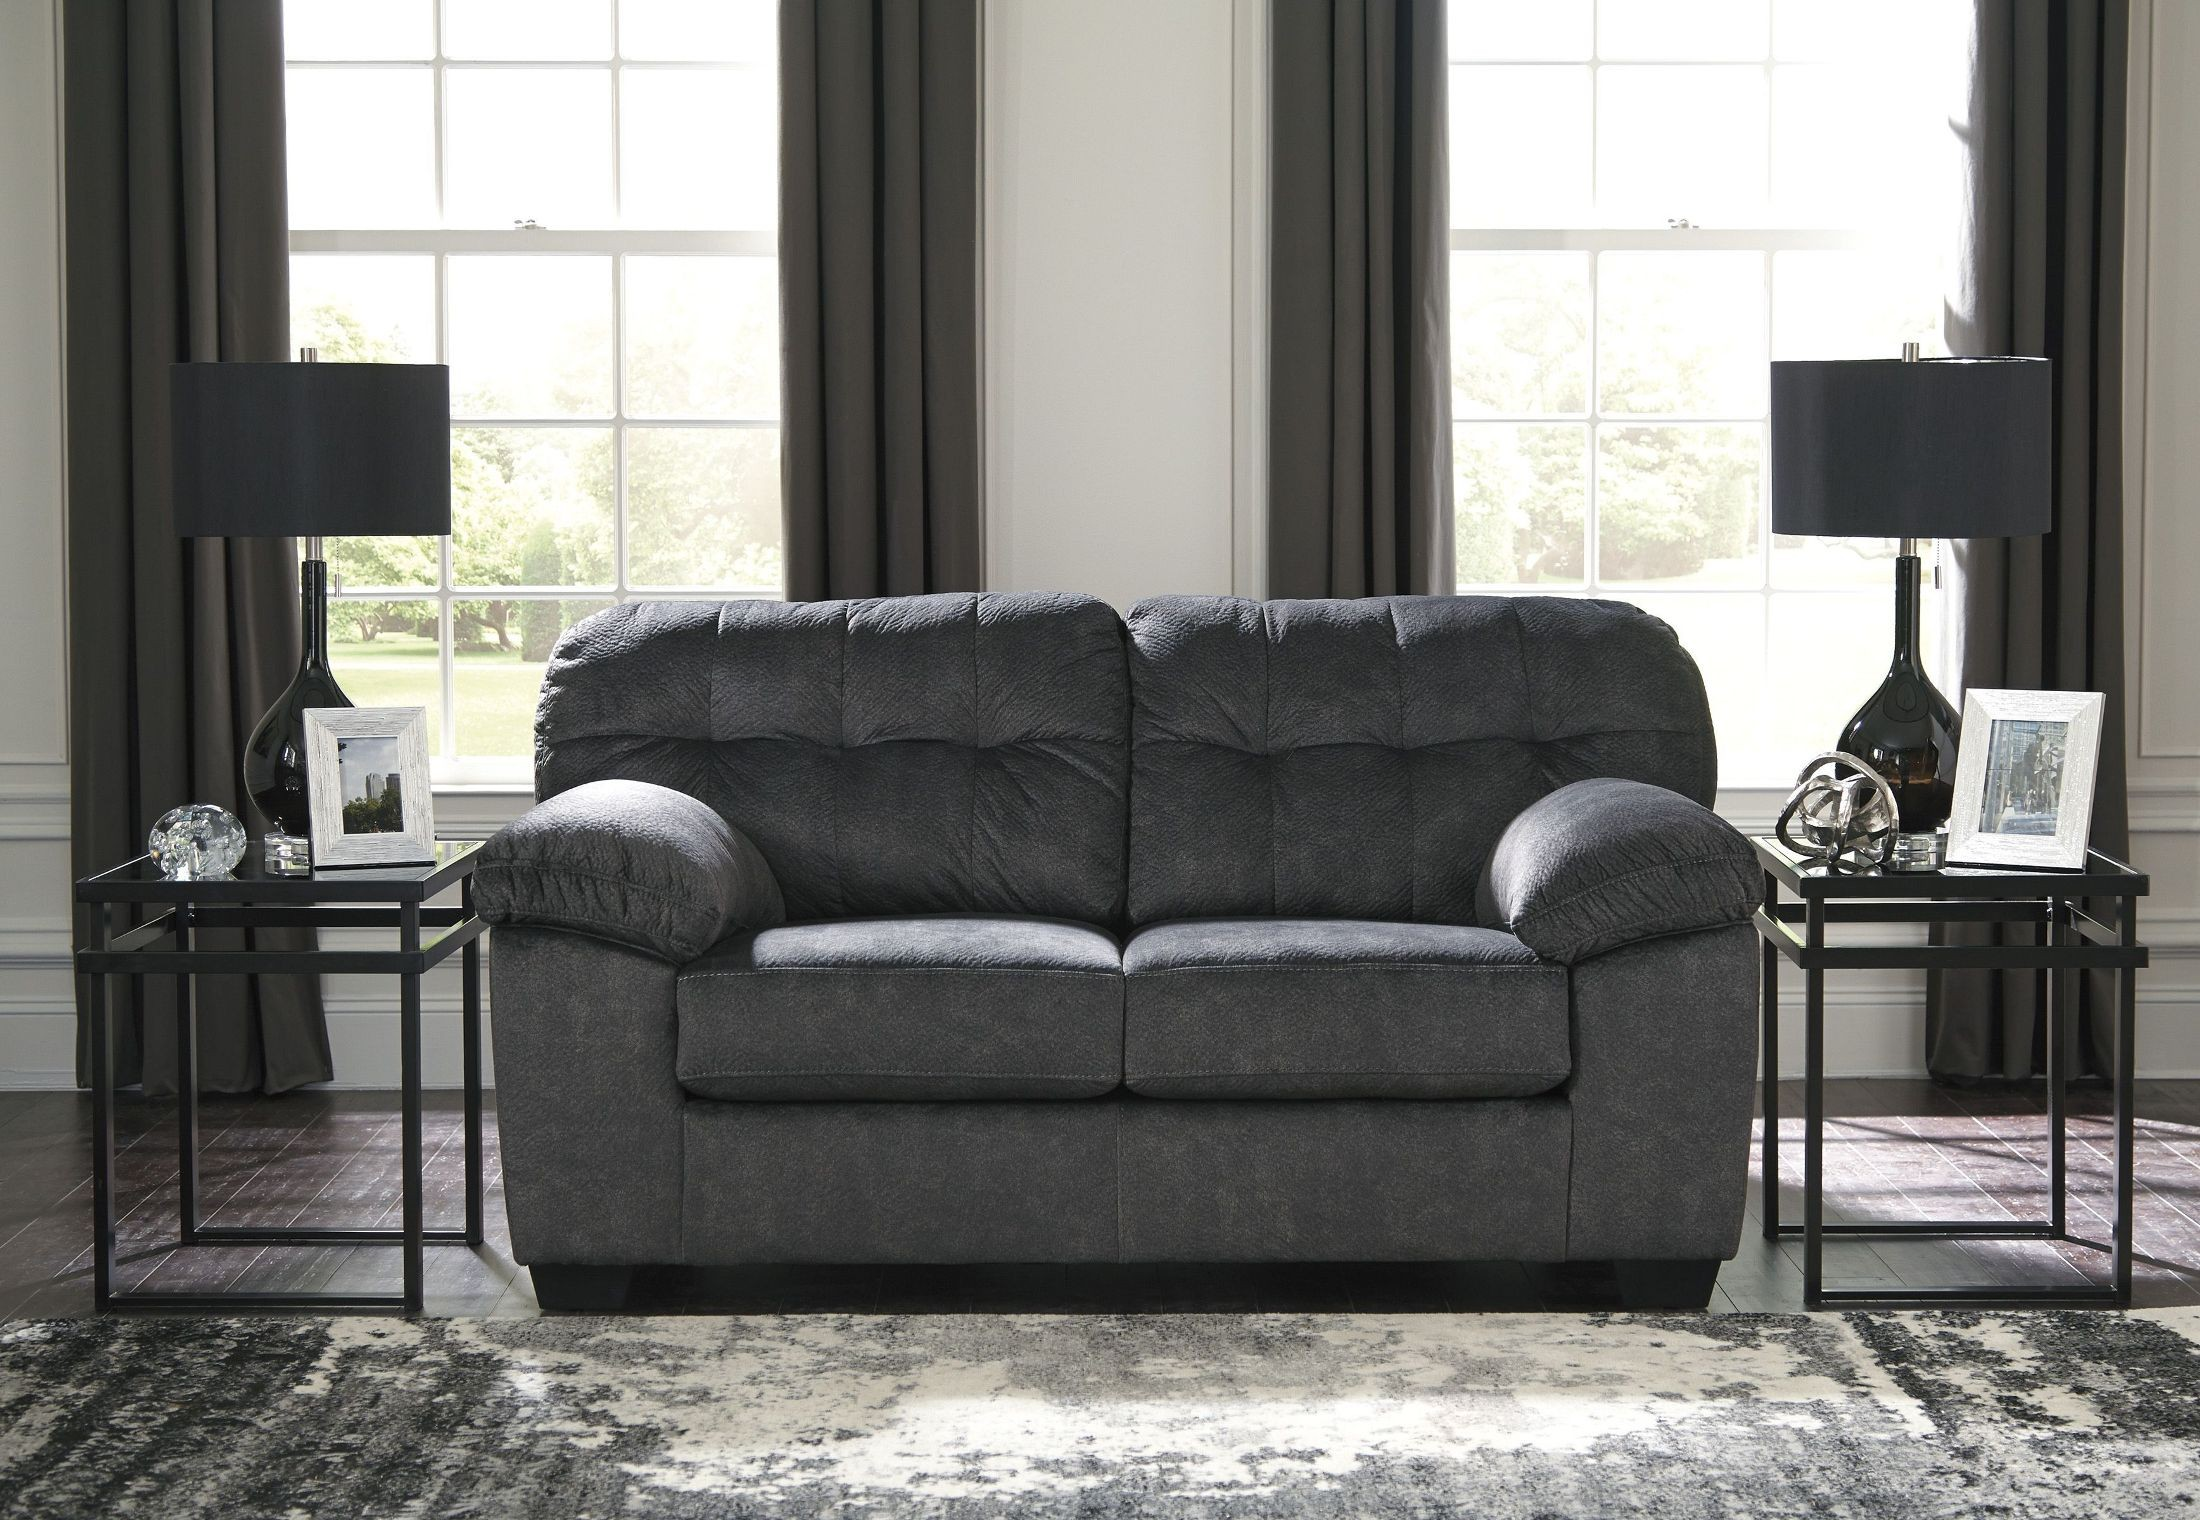 Accrington Granite Loveseat From Ashley Coleman Furniture ~ Sofa And Matching Loveseat